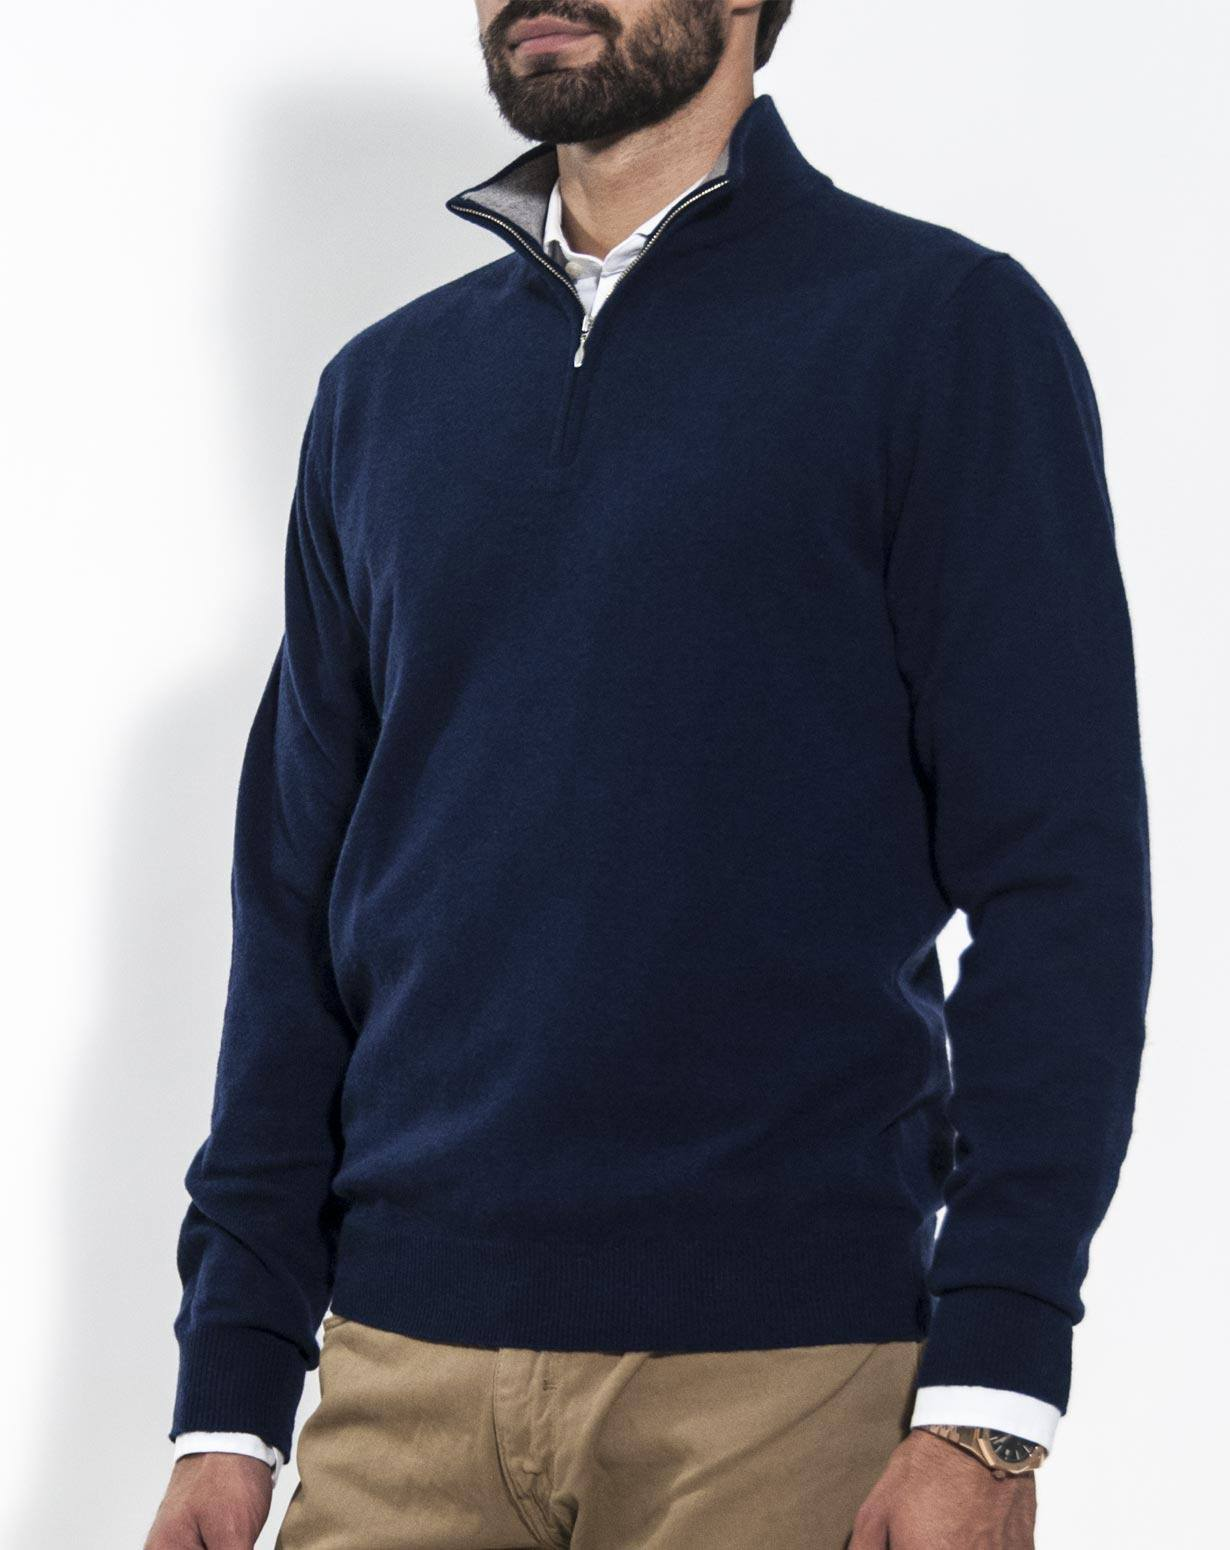 This mock-neck sweater has a quarter-zip neckline and a trim silhouette. Crafted from %, ultra-soft Merino wool, it's effortlessly comfortable and makes an ideal layering piece for cooler weather% extra fine Merino jelly555.ml-neck with 1/4 zip jelly555.ml neck and jelly555.ml sizes are Modern Fit, big sizes are Classic jelly555.ml jelly555.mle Washable.